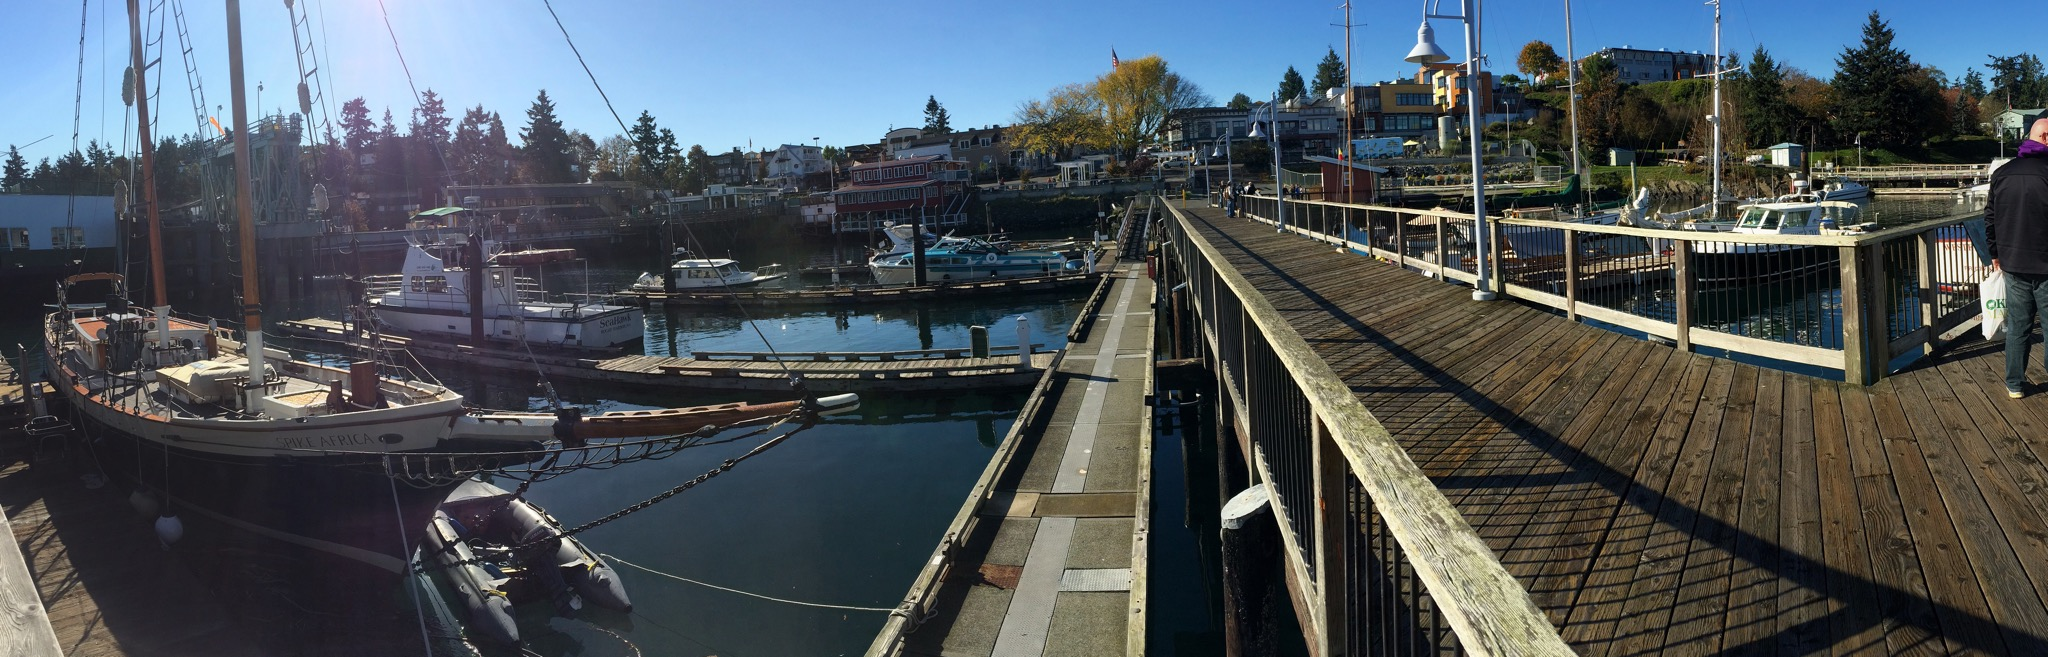 FridayHarbor_Pano